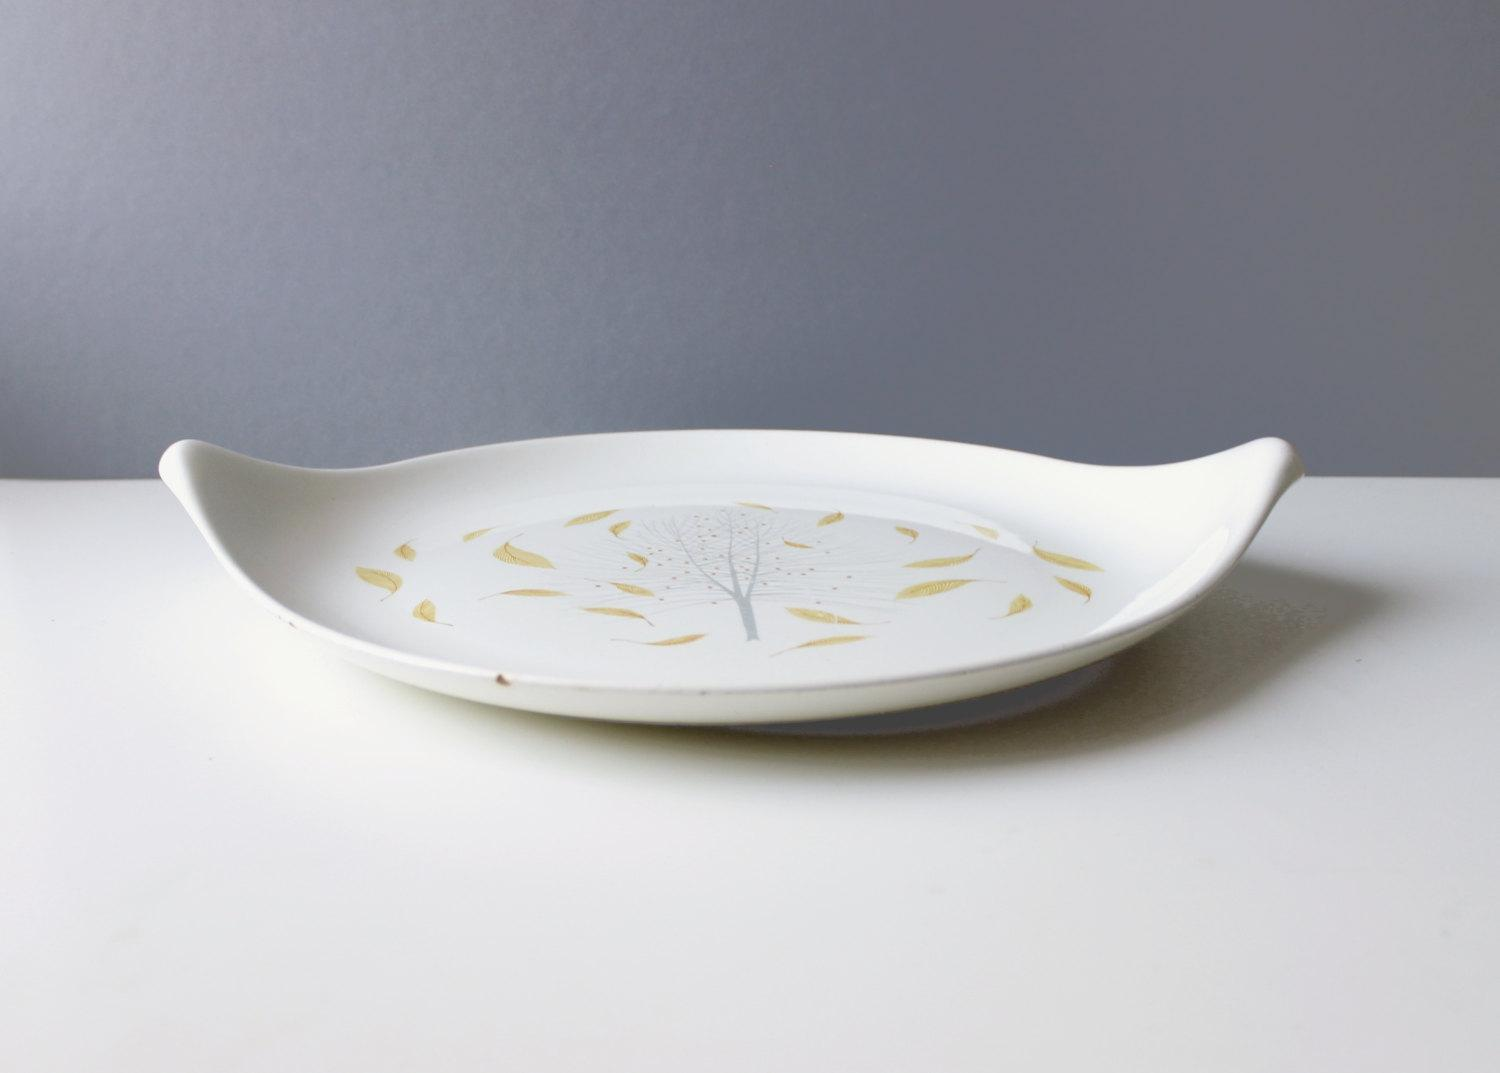 Nice Eva Zeisel For Hallcraft Sunglow Serving Platter Mid Century   Image 3 Of 5